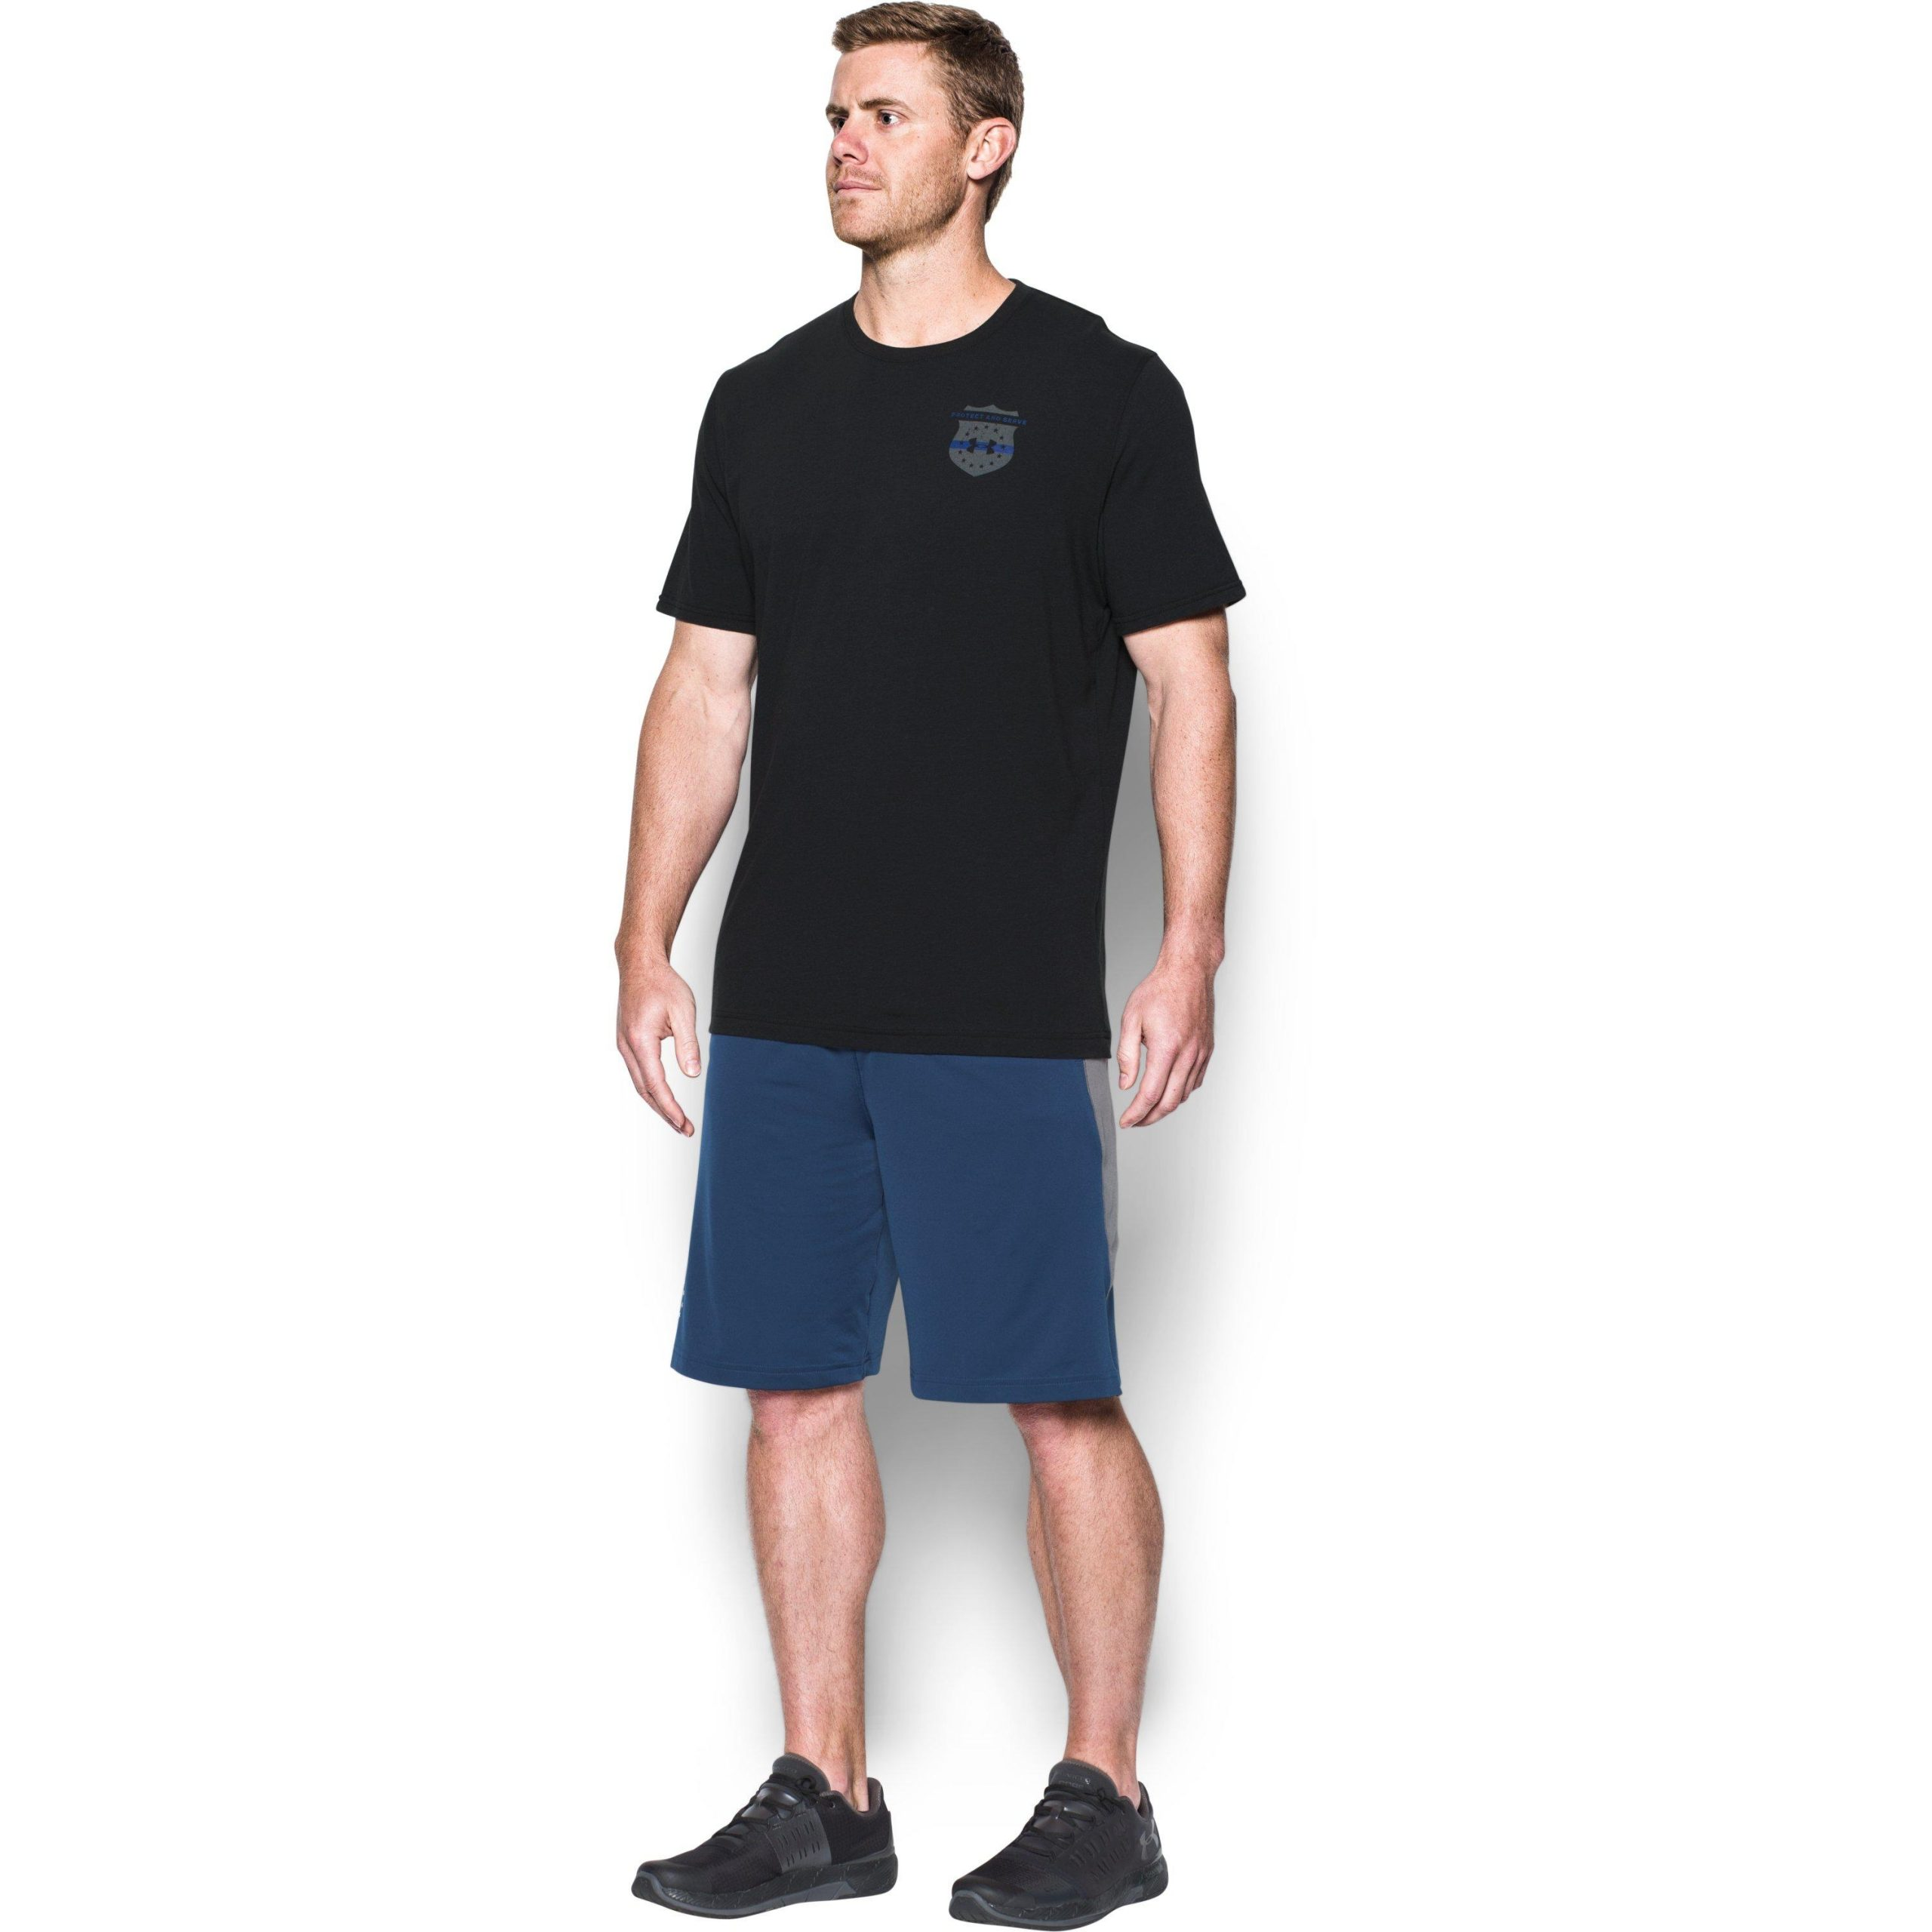 Under Armour Cotton Men'S Ua Freedom Thin Blue Line T-Shirt In Black For Men - Lyst